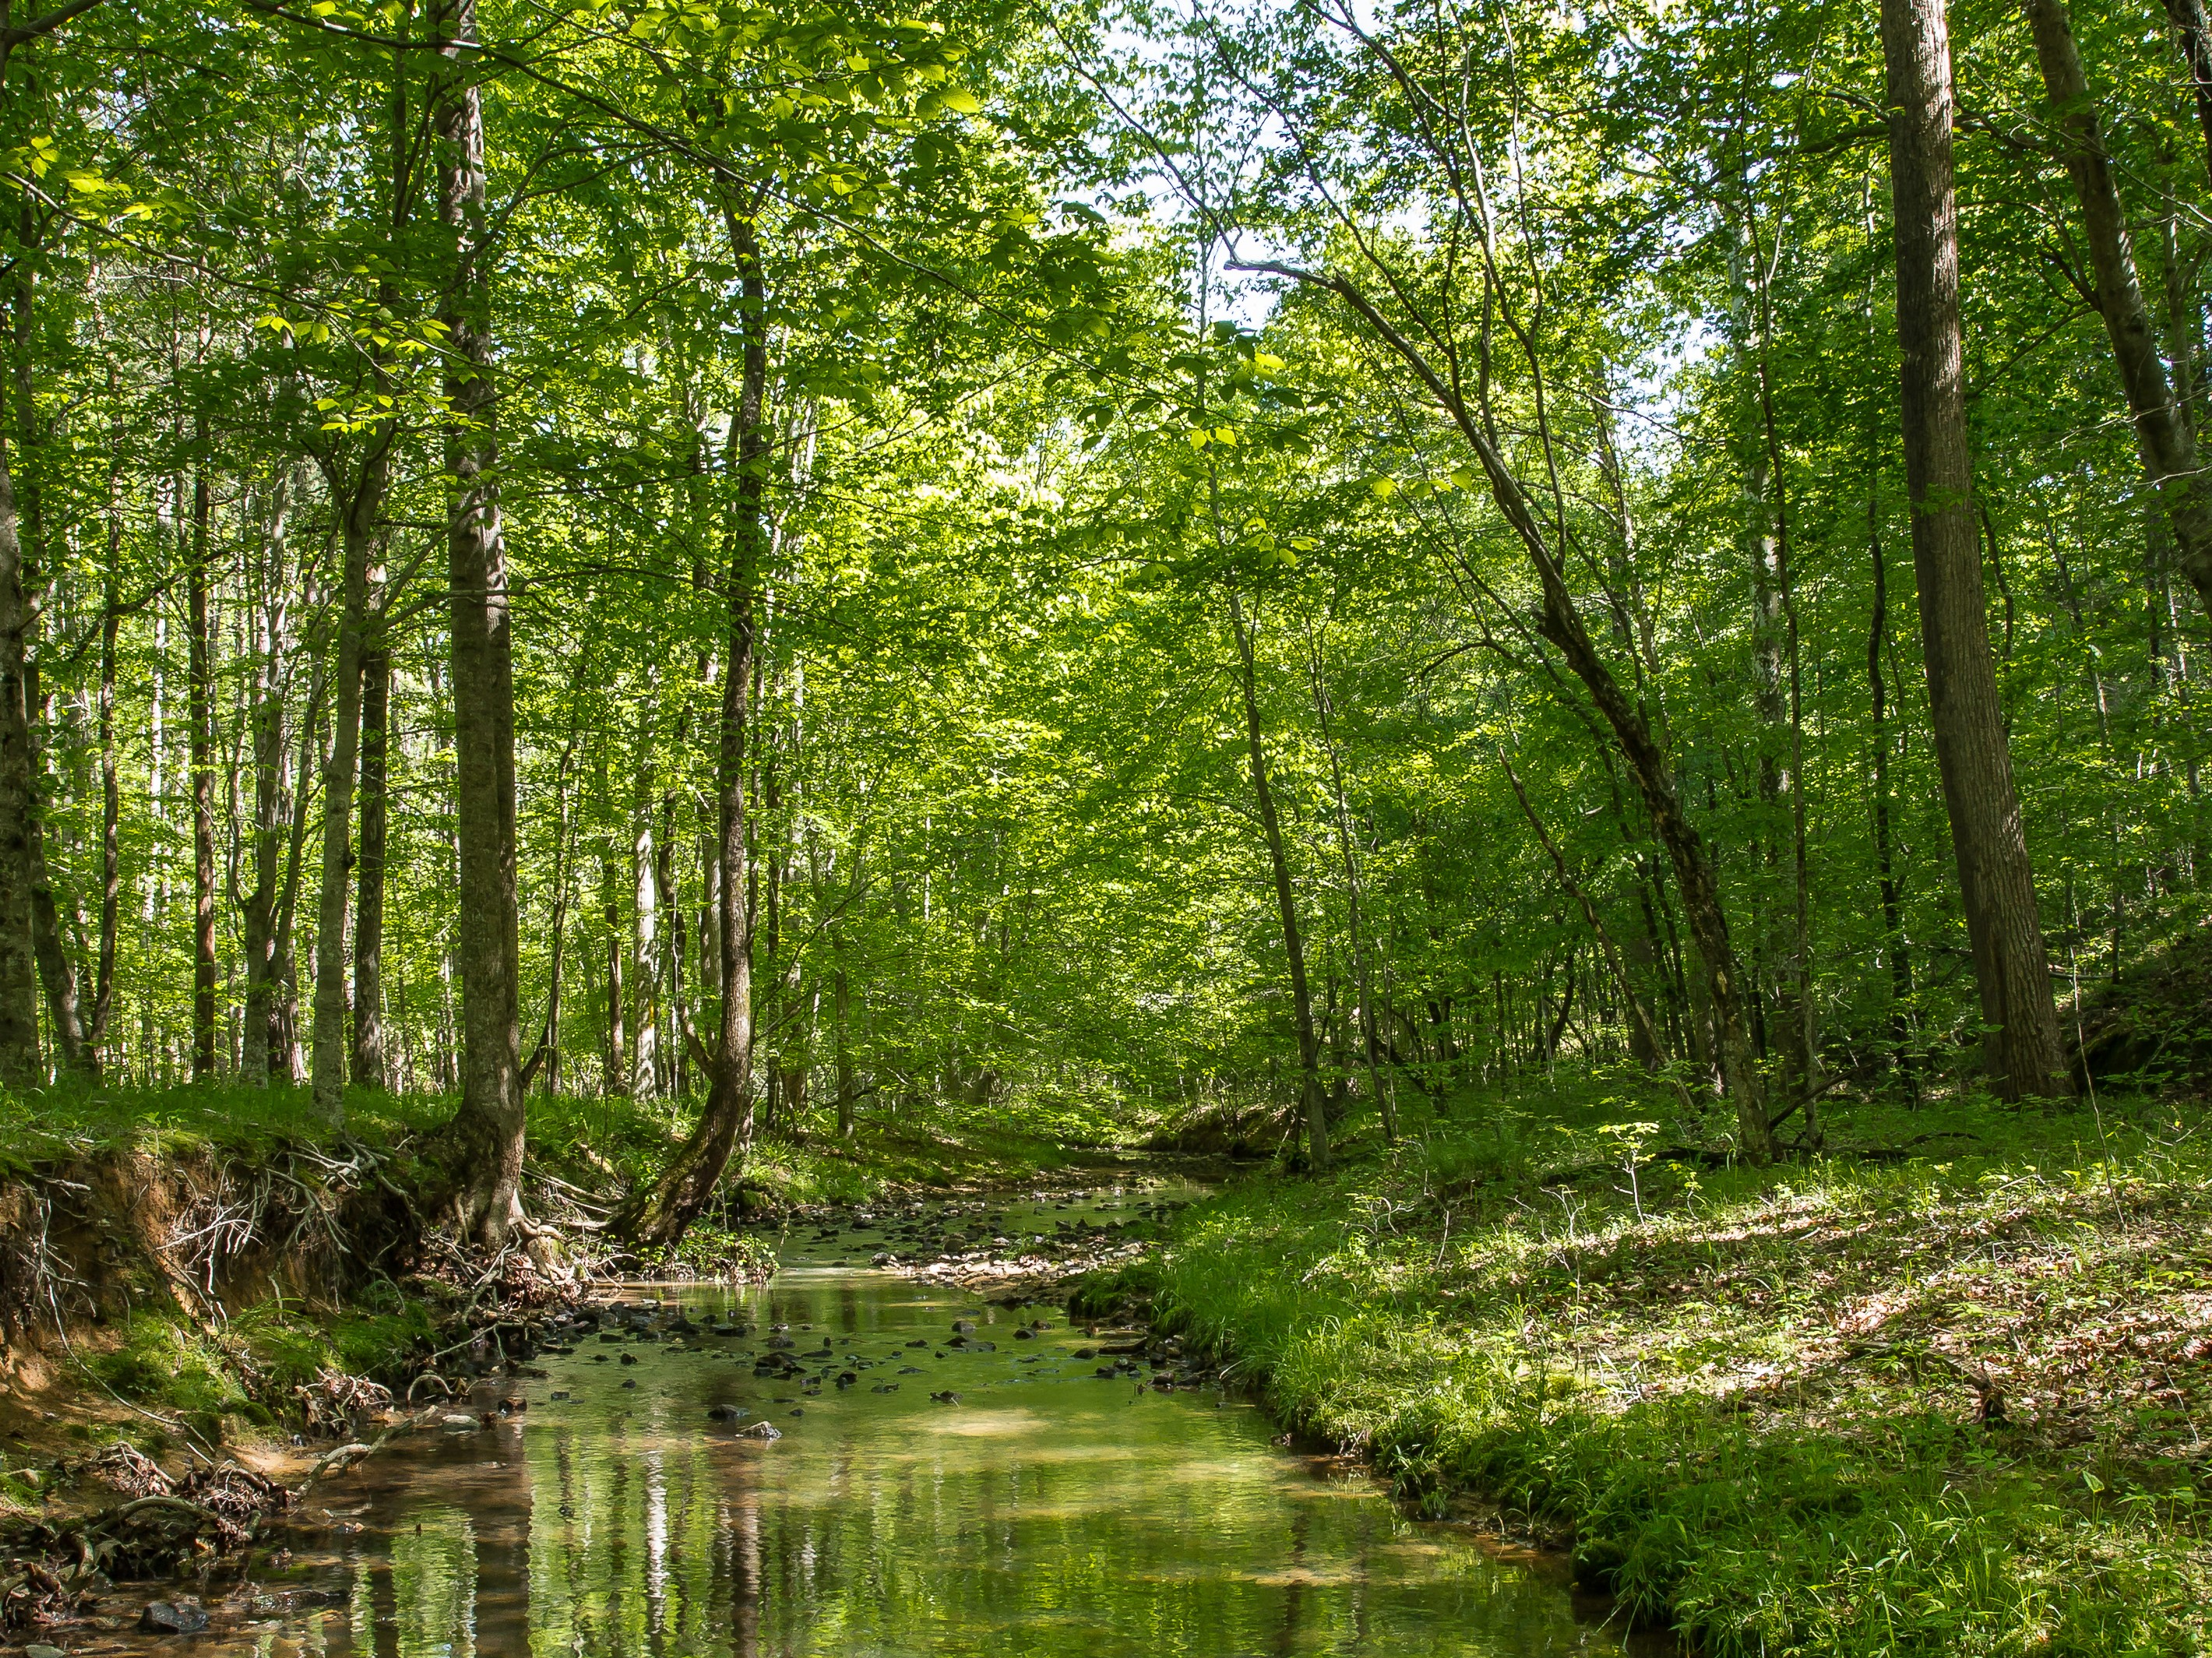 <p>Local land trusts are able to responsibly manage the Triangle region and protect water supplies. Photo by Sam Upchurch/The Conservation Fund</p>